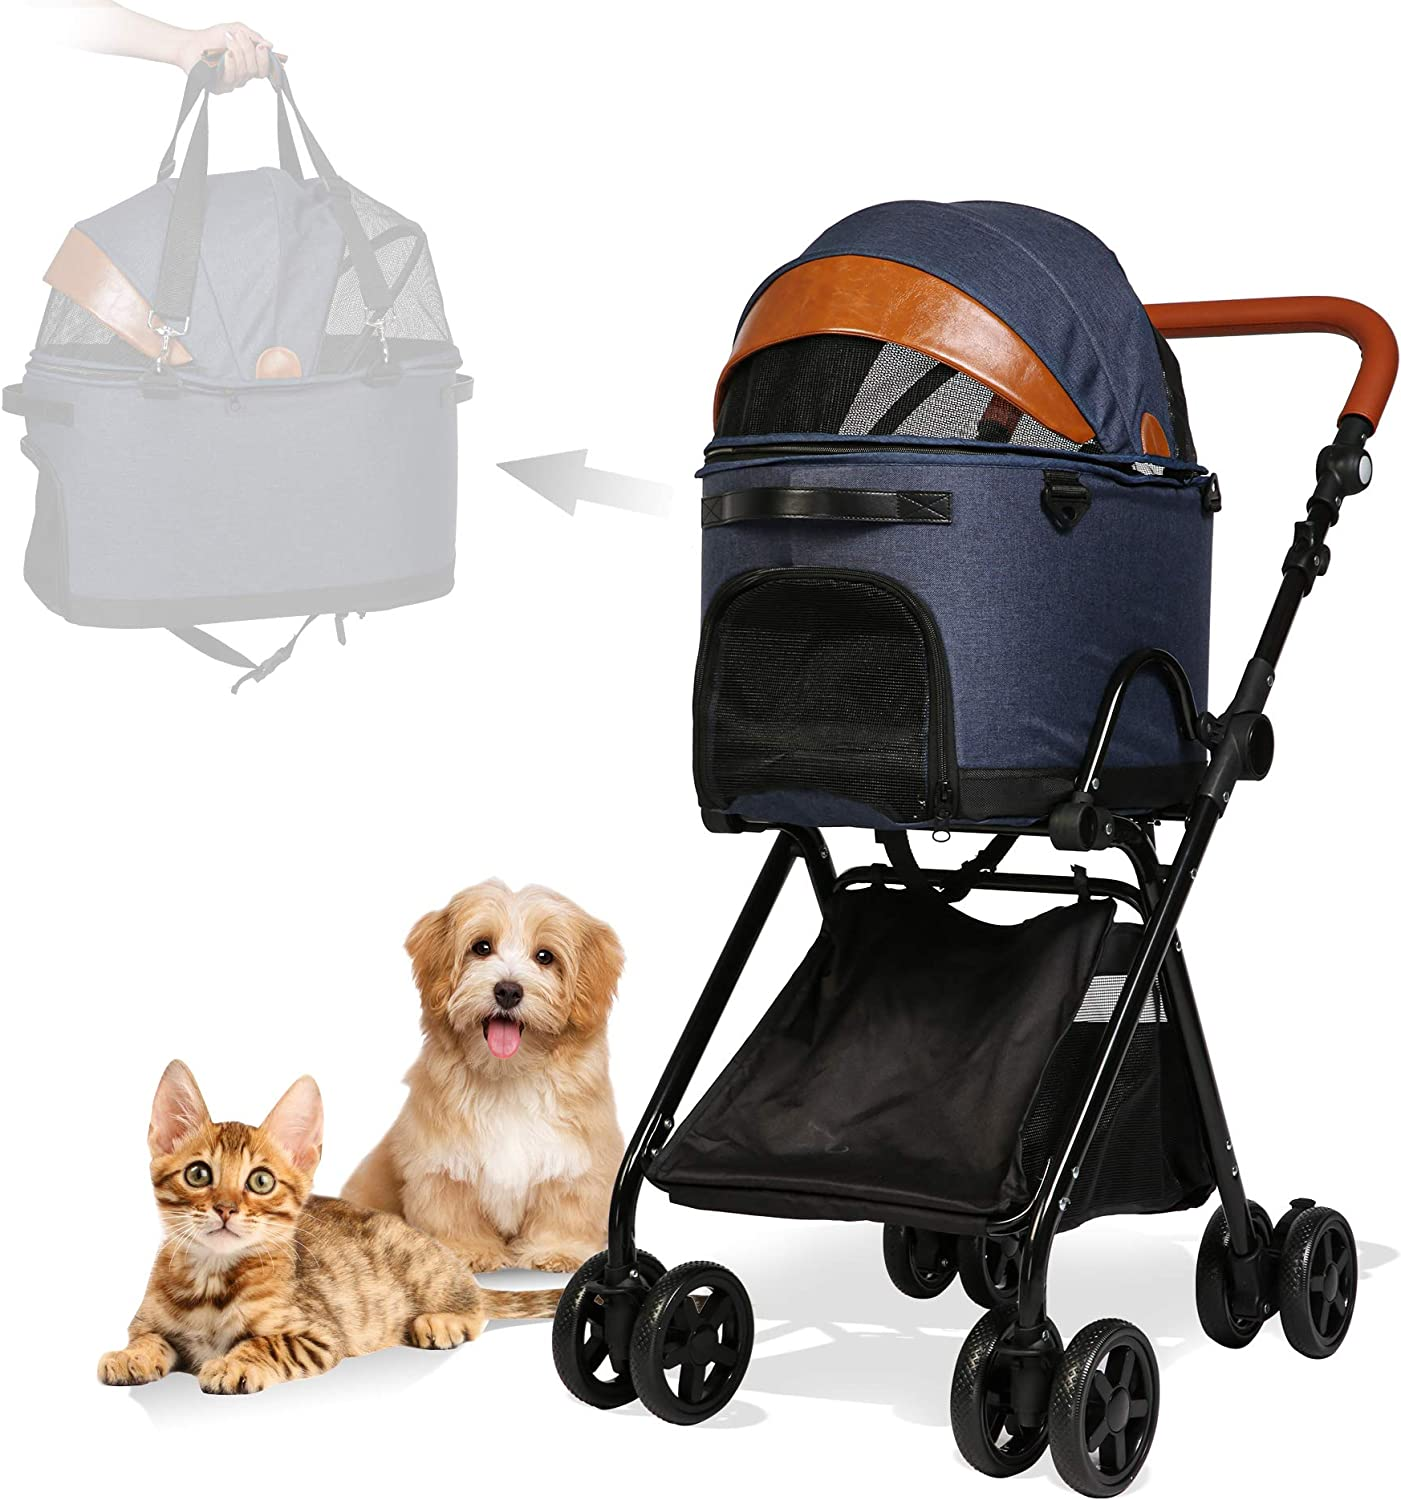 LUCKYERMORE Luxury A quality assurance surprise price is realized Folding Pet Stroller 1 Ca Detachable in 2